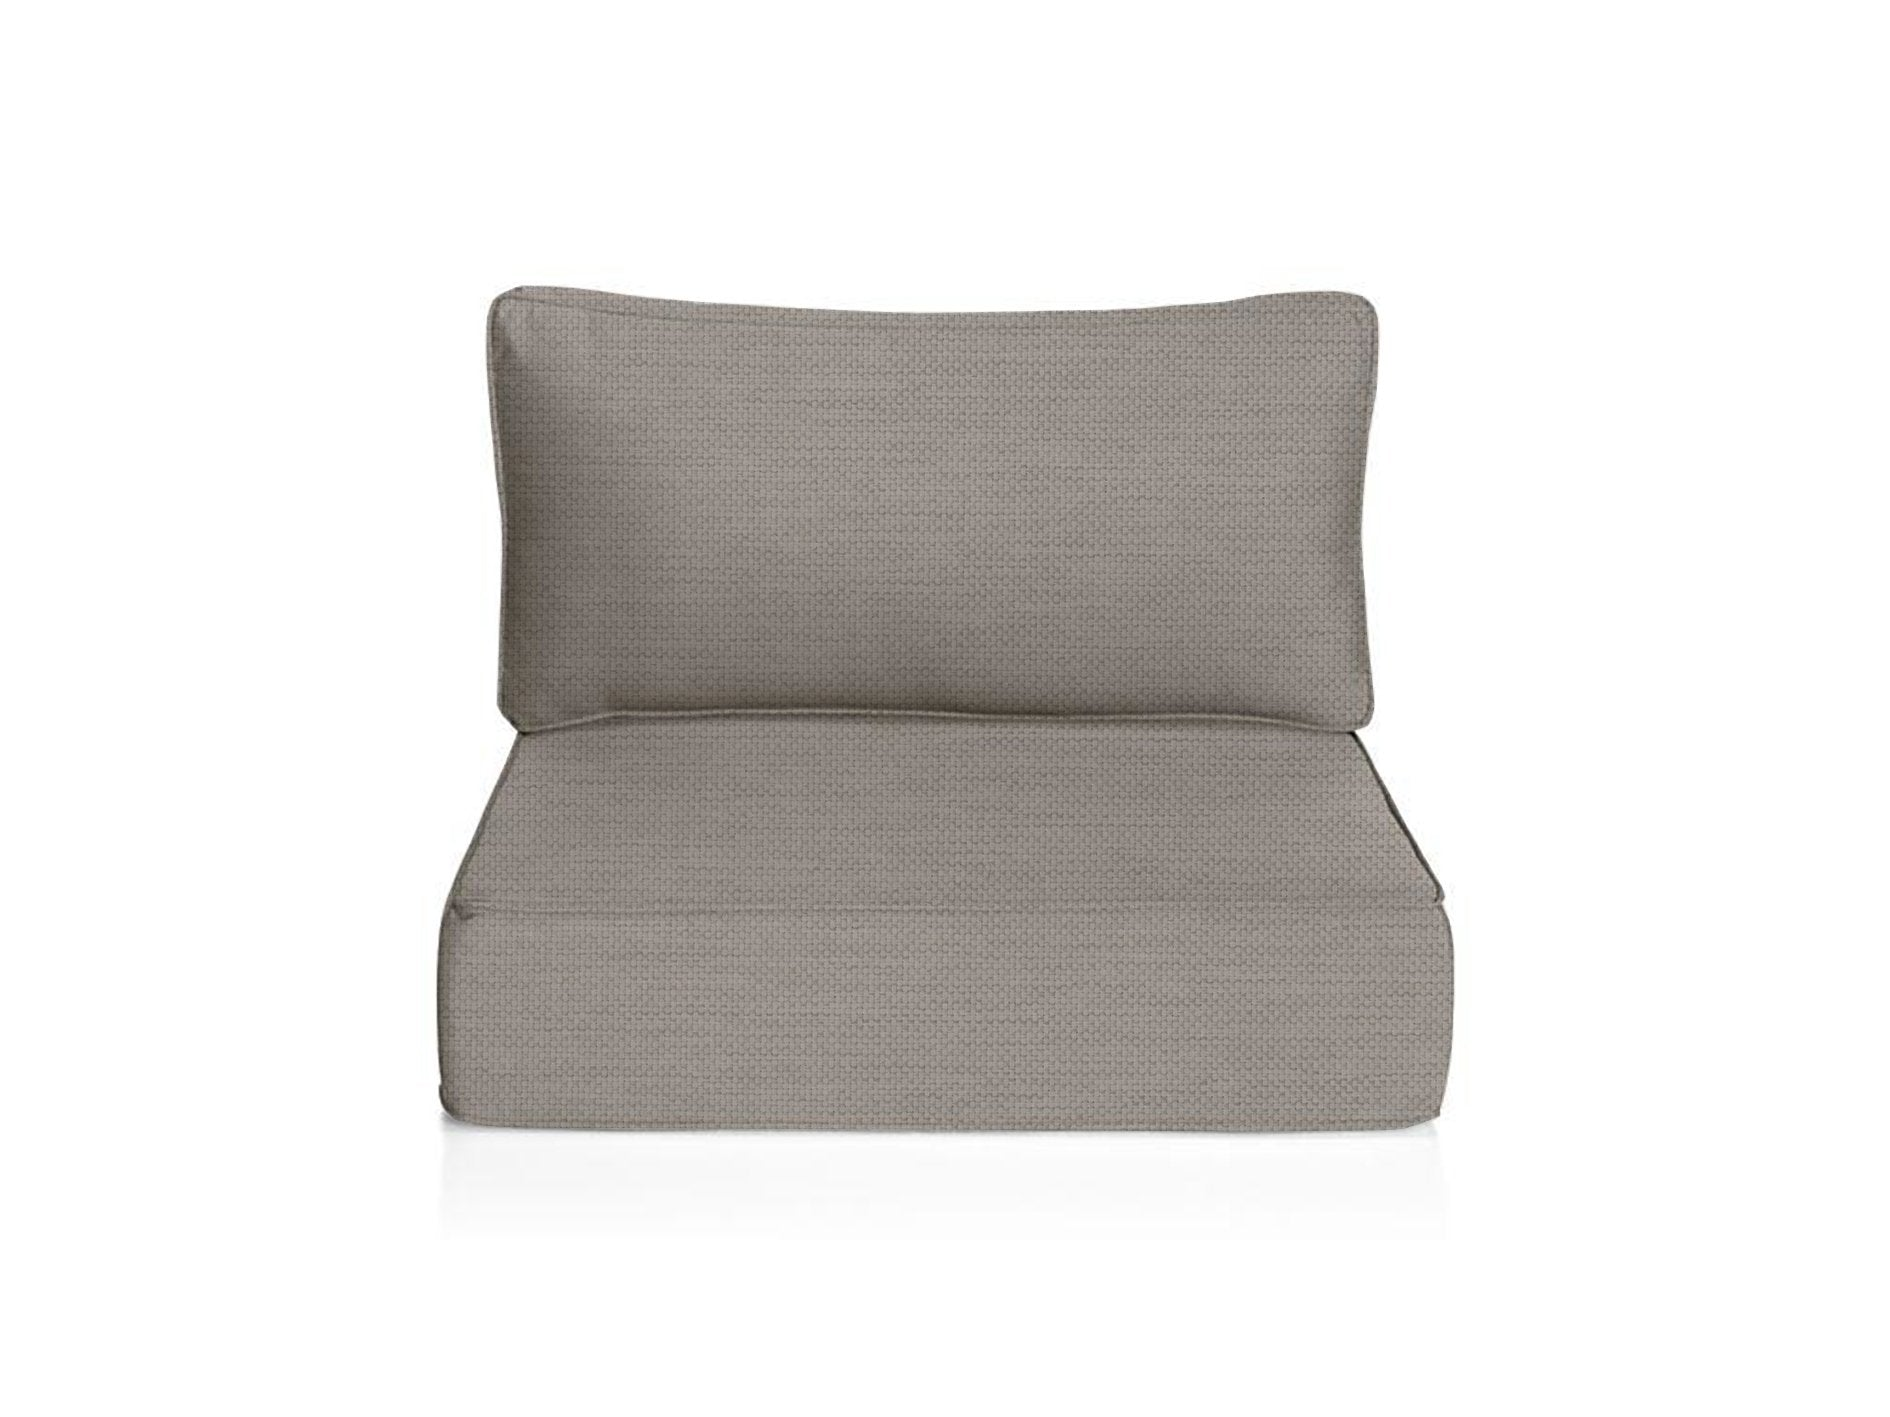 custom cushions lomani outdoor chair custom cushions 2 2000x